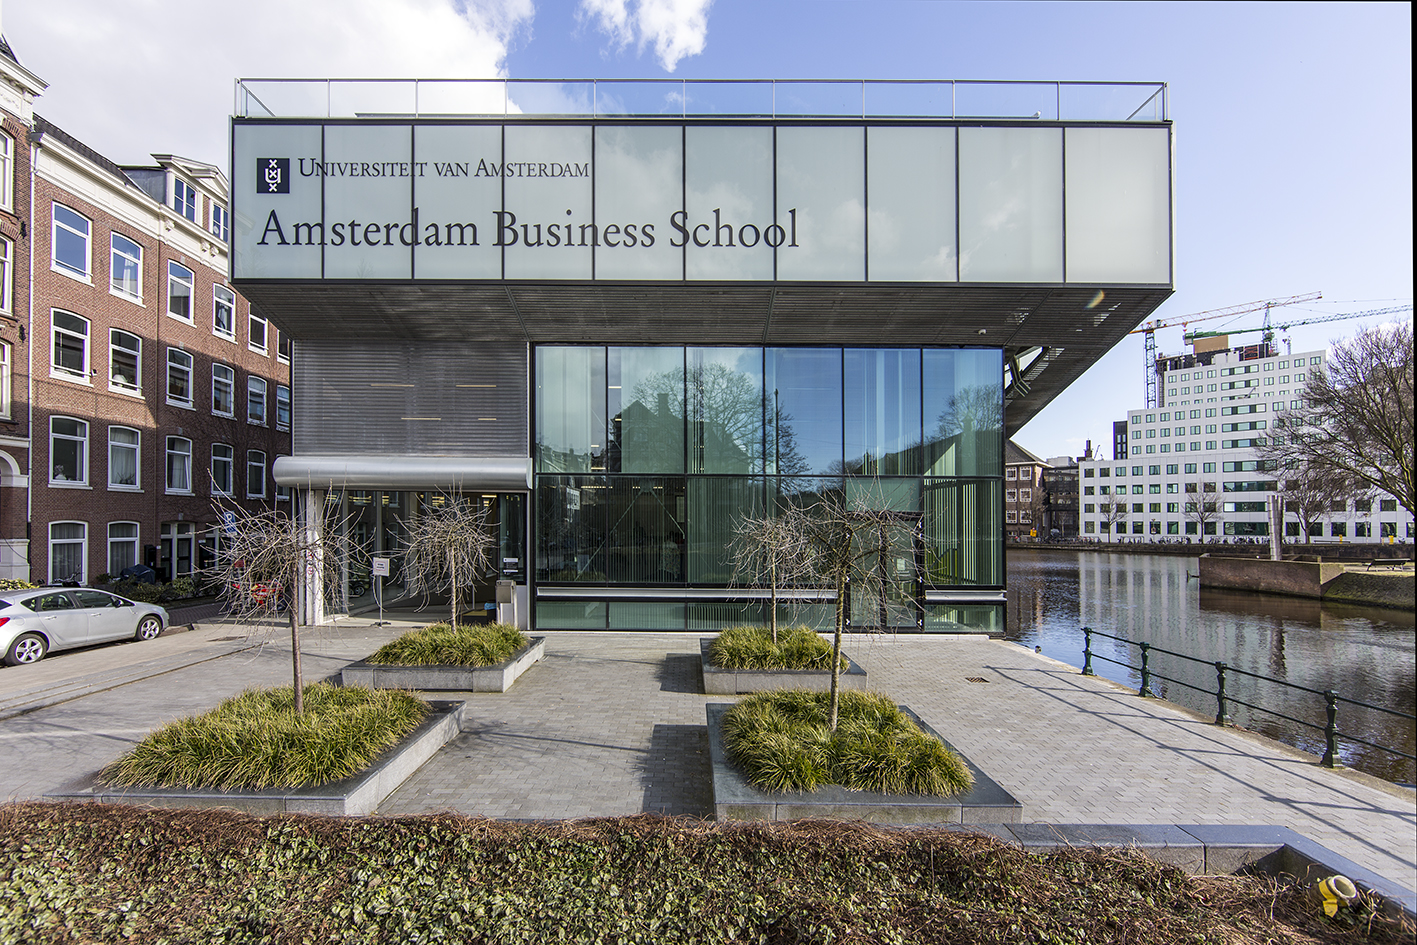 EU Business School Collaborates with the University of Amsterdam